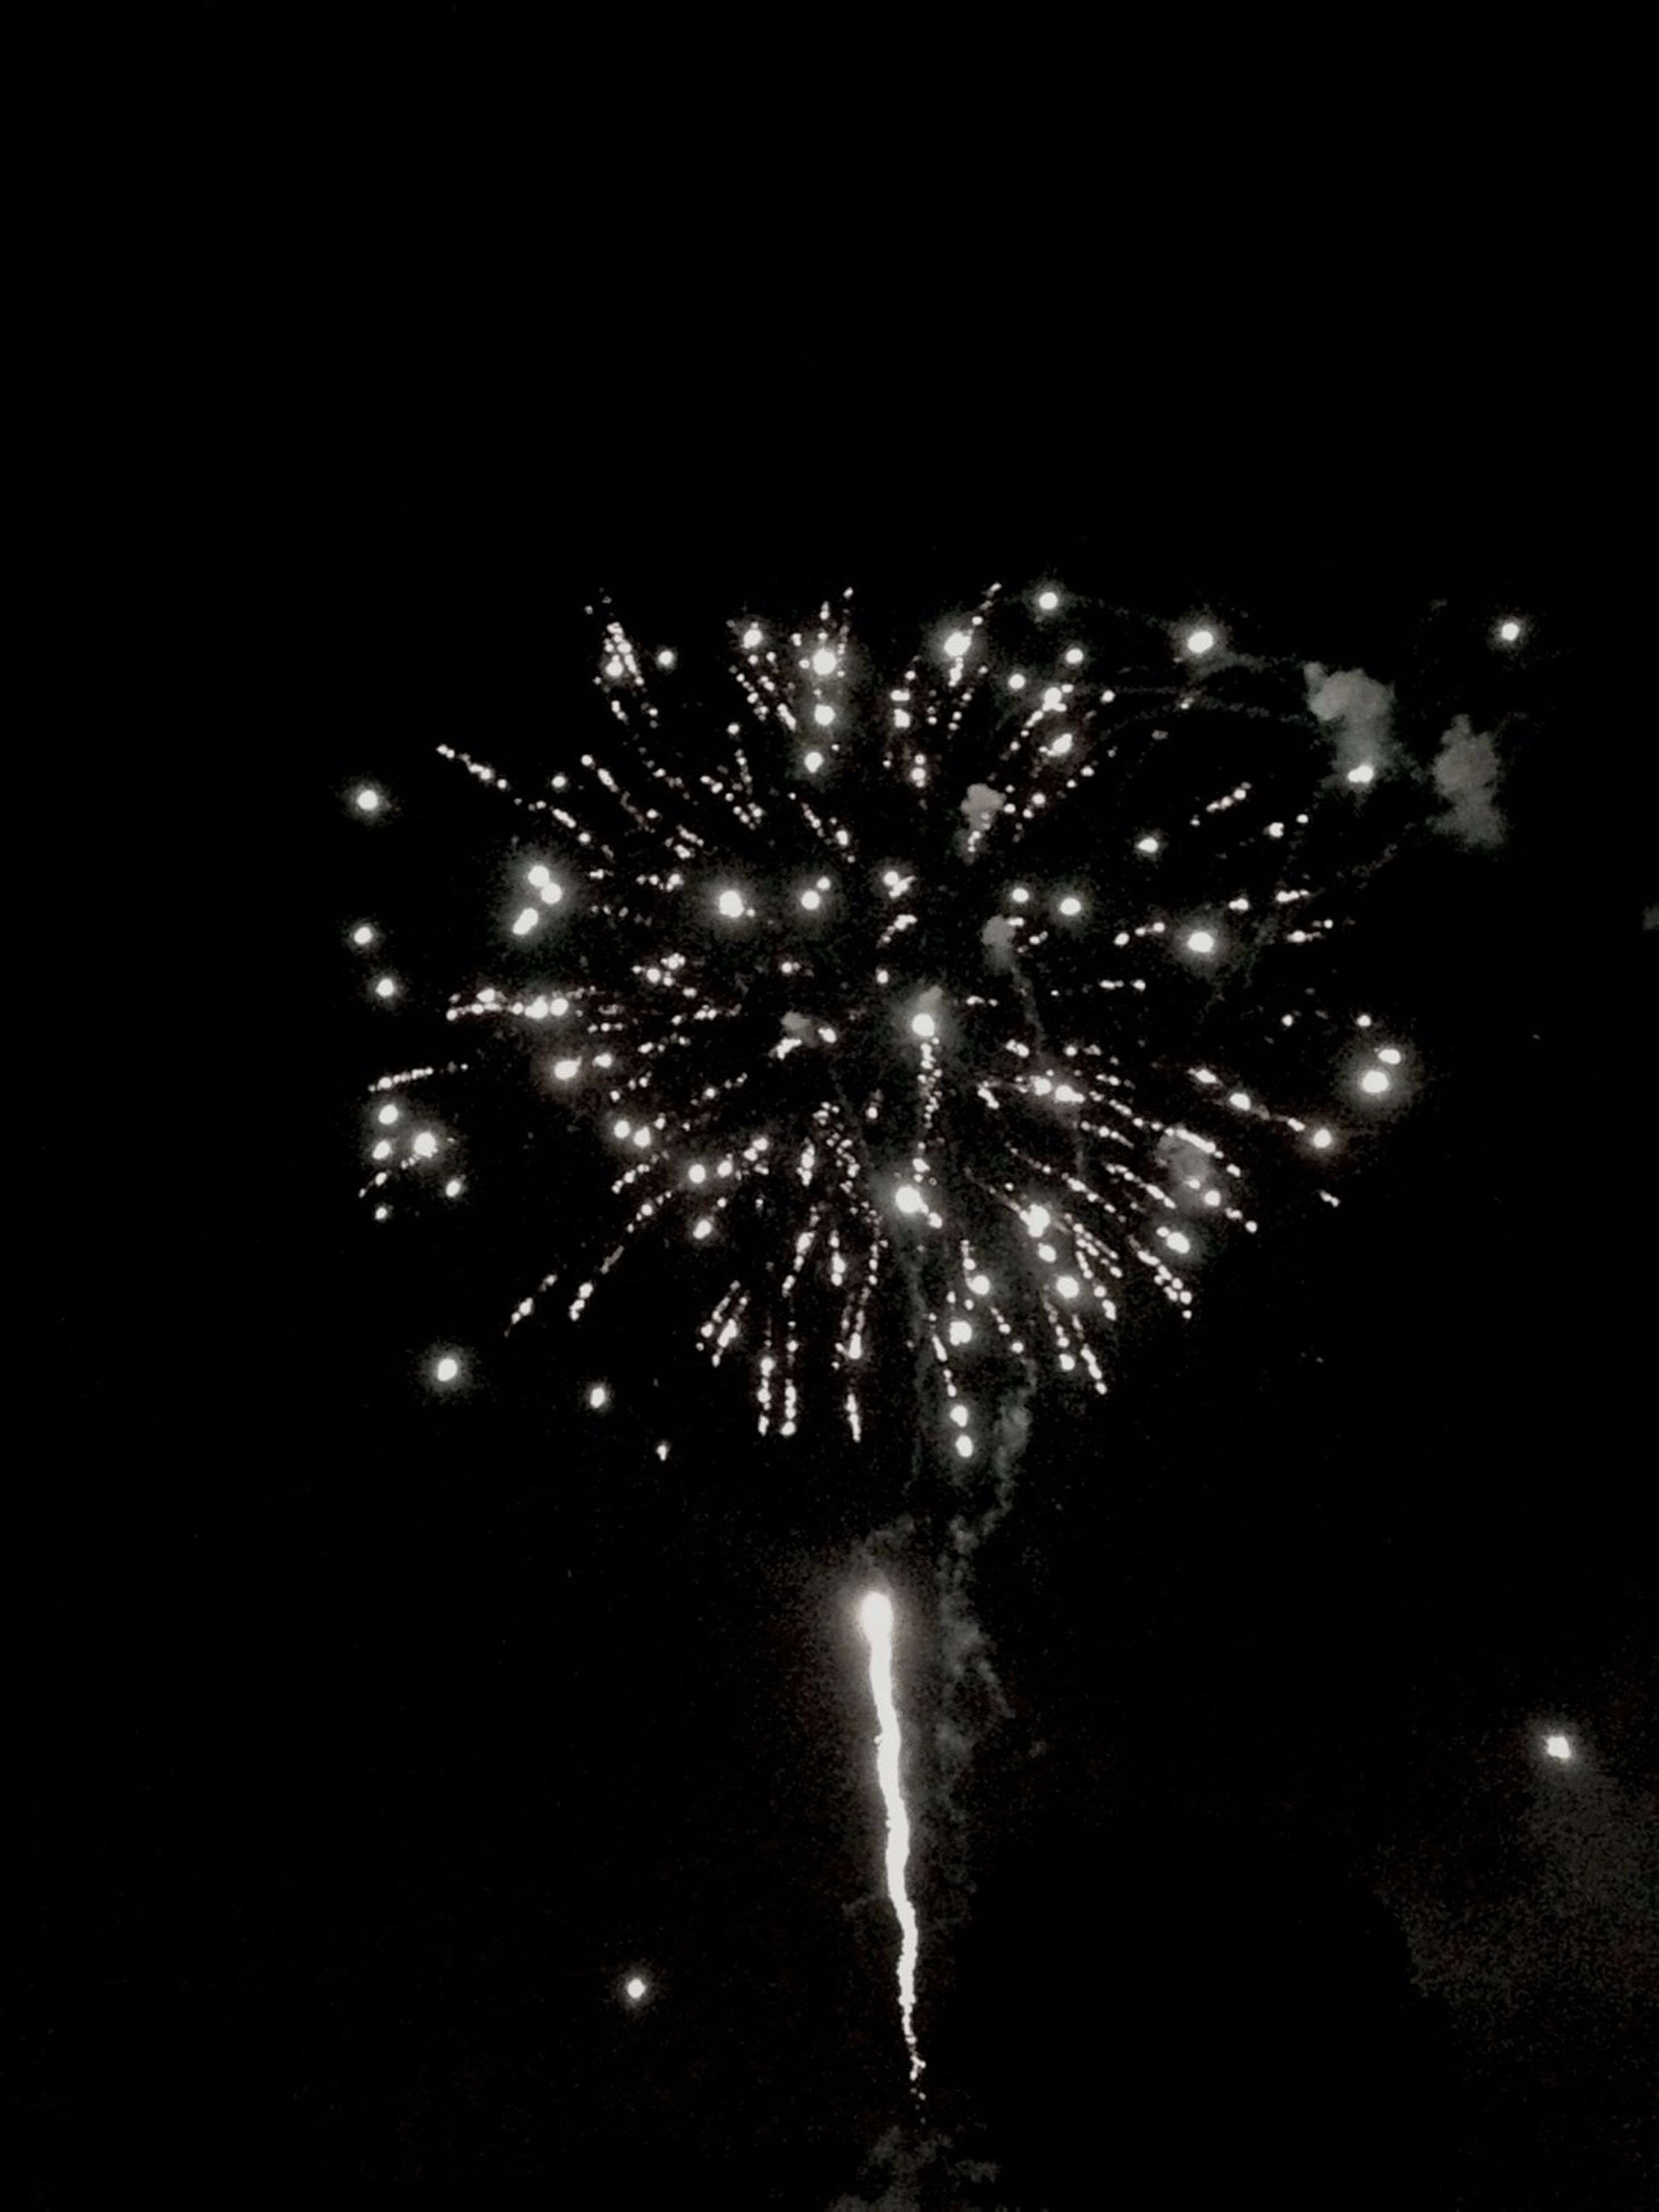 night, illuminated, firework display, celebration, exploding, firework - man made object, glowing, long exposure, event, arts culture and entertainment, motion, sparks, firework, low angle view, entertainment, blurred motion, sky, celebration event, dark, light